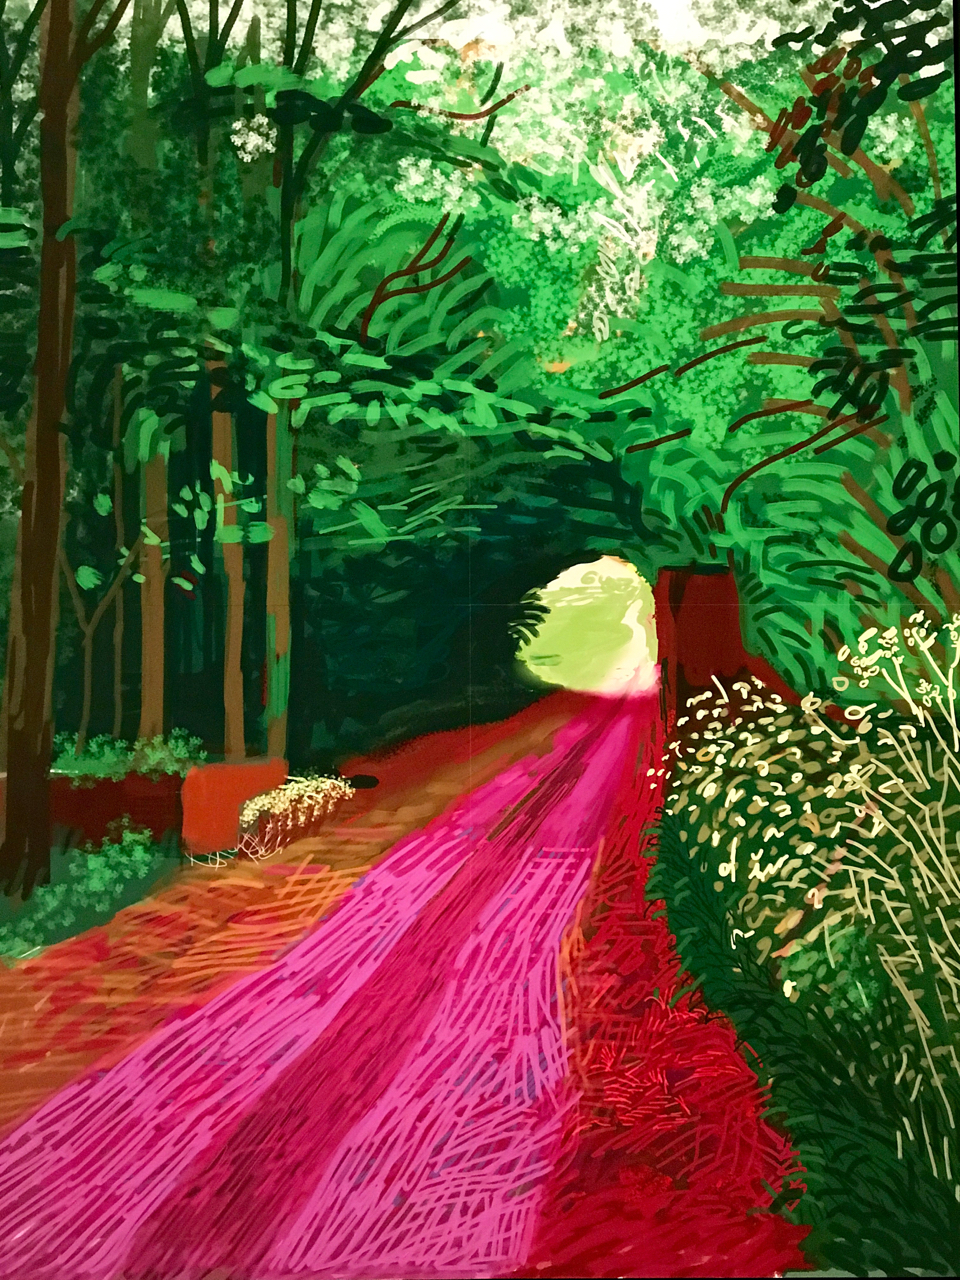 David-Hockney-the-arrival-of-spring